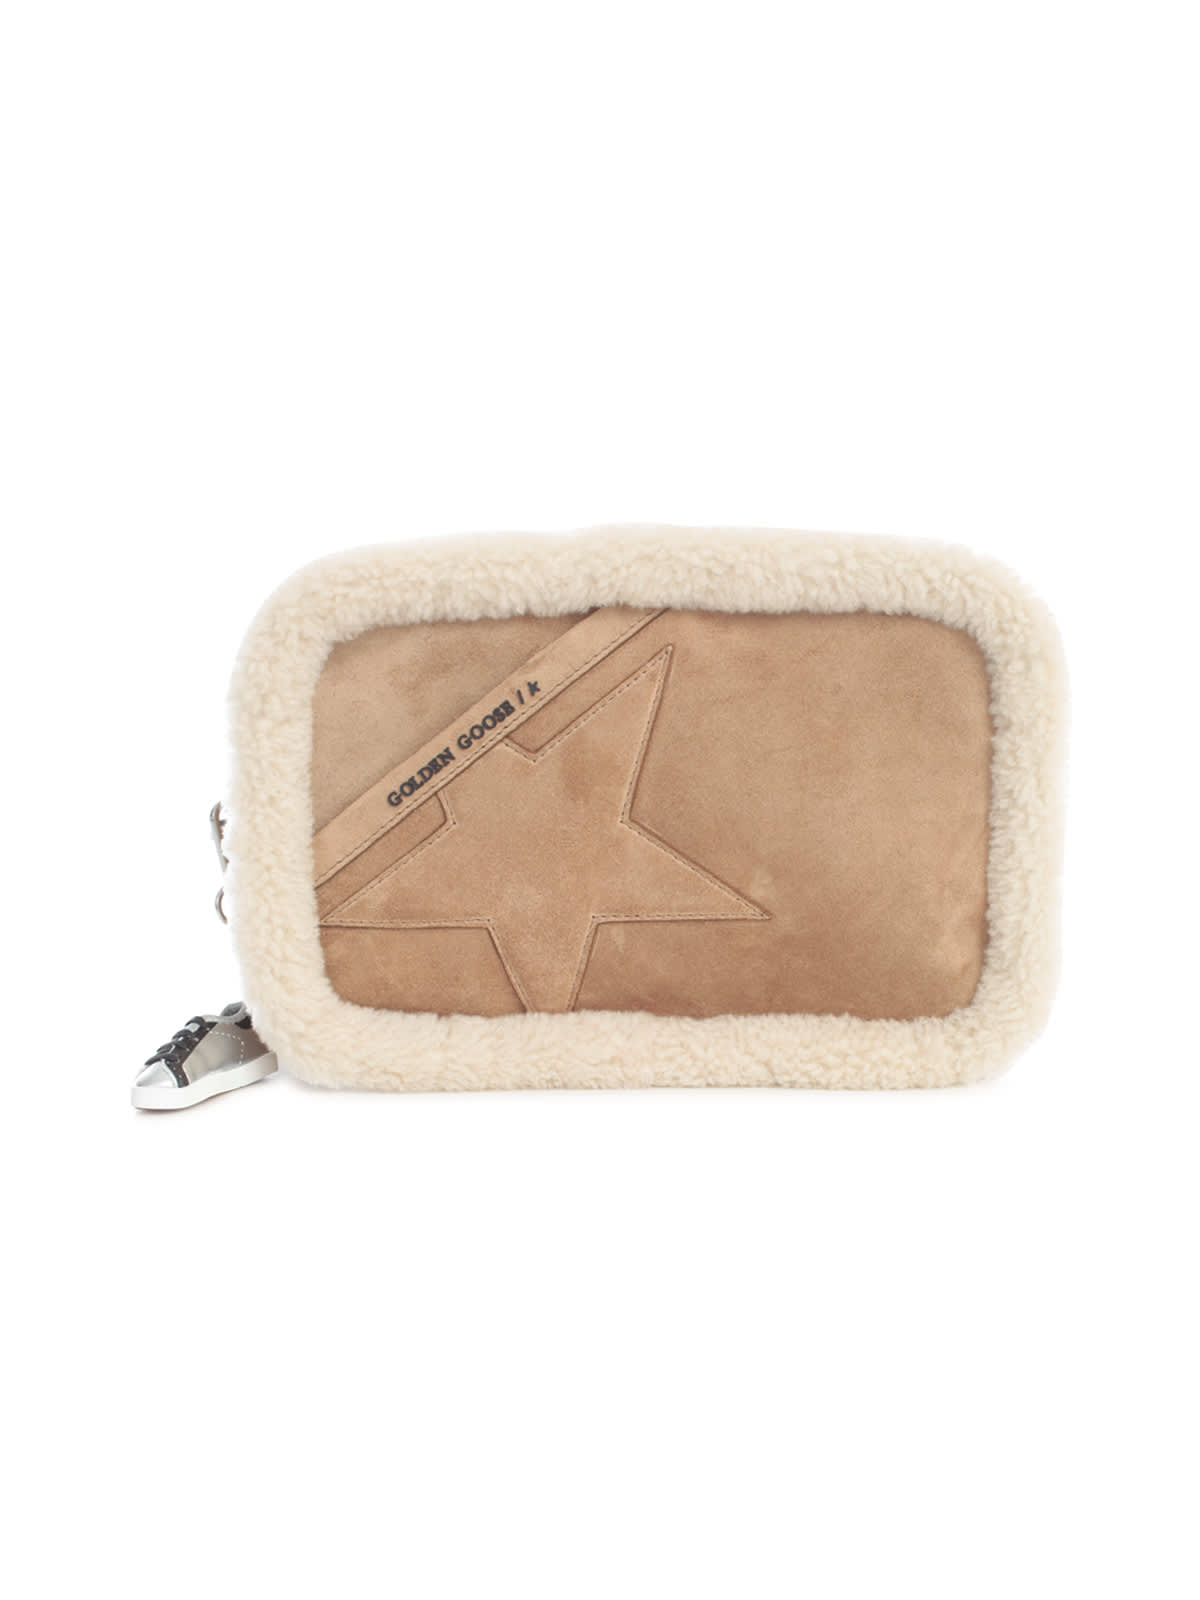 GOLDEN GOOSE STAR BAG FUR PROFILE SUEDE BODY SUEDE STAR AND SHOULDER STRAP